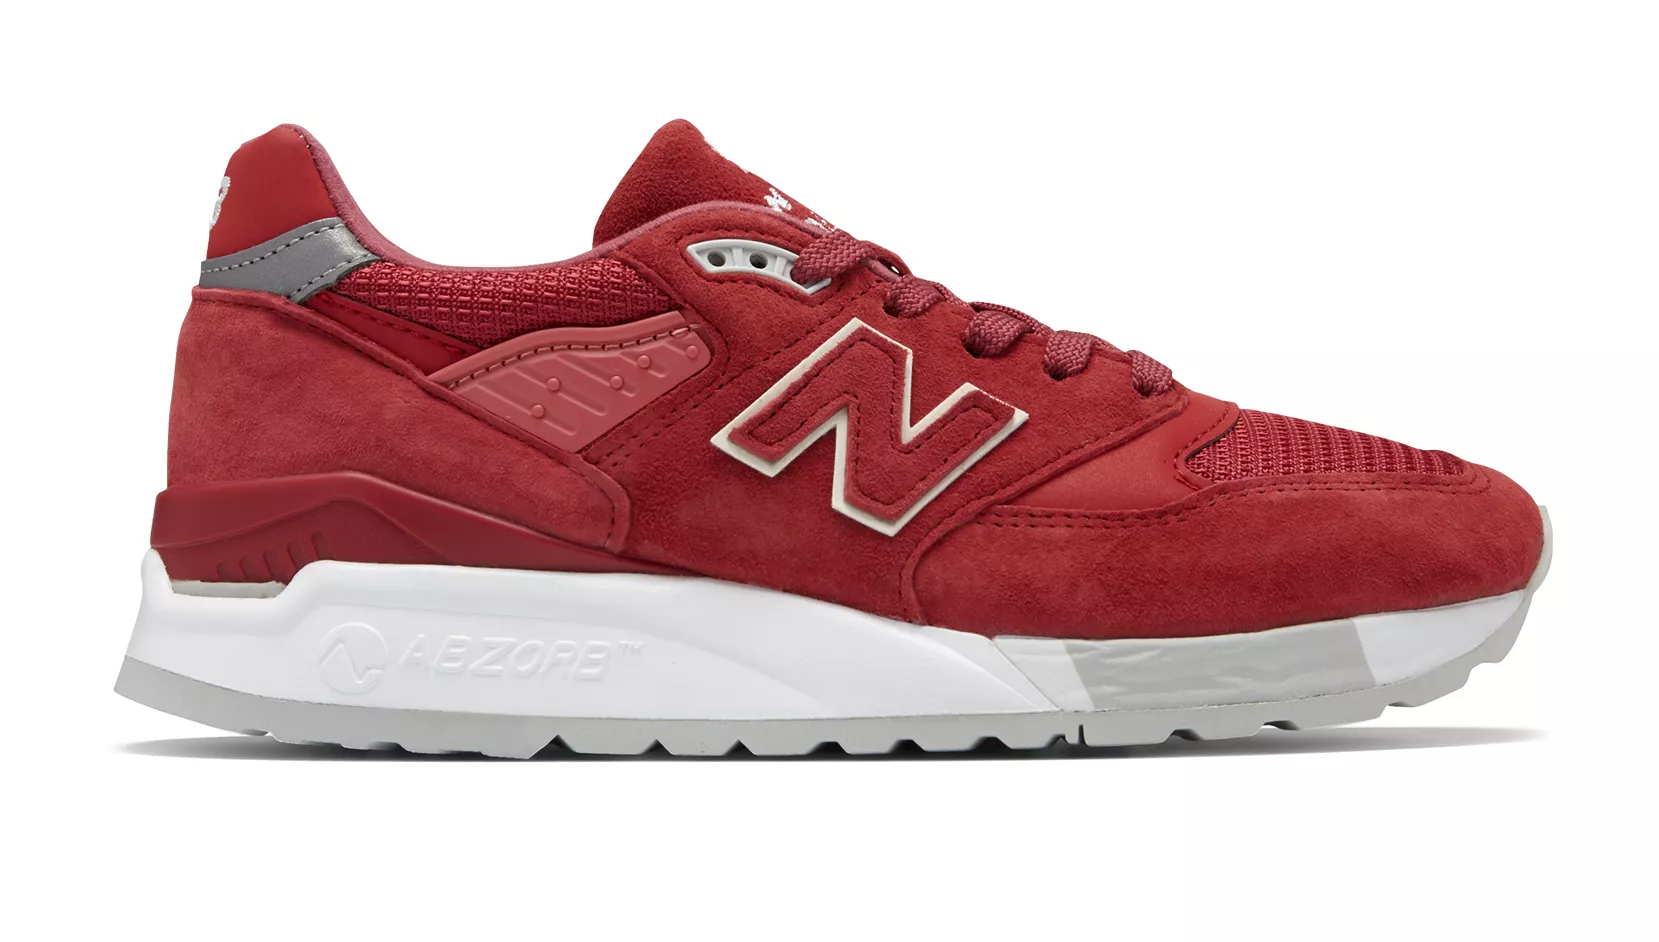 998 new balance 998 made in the usa